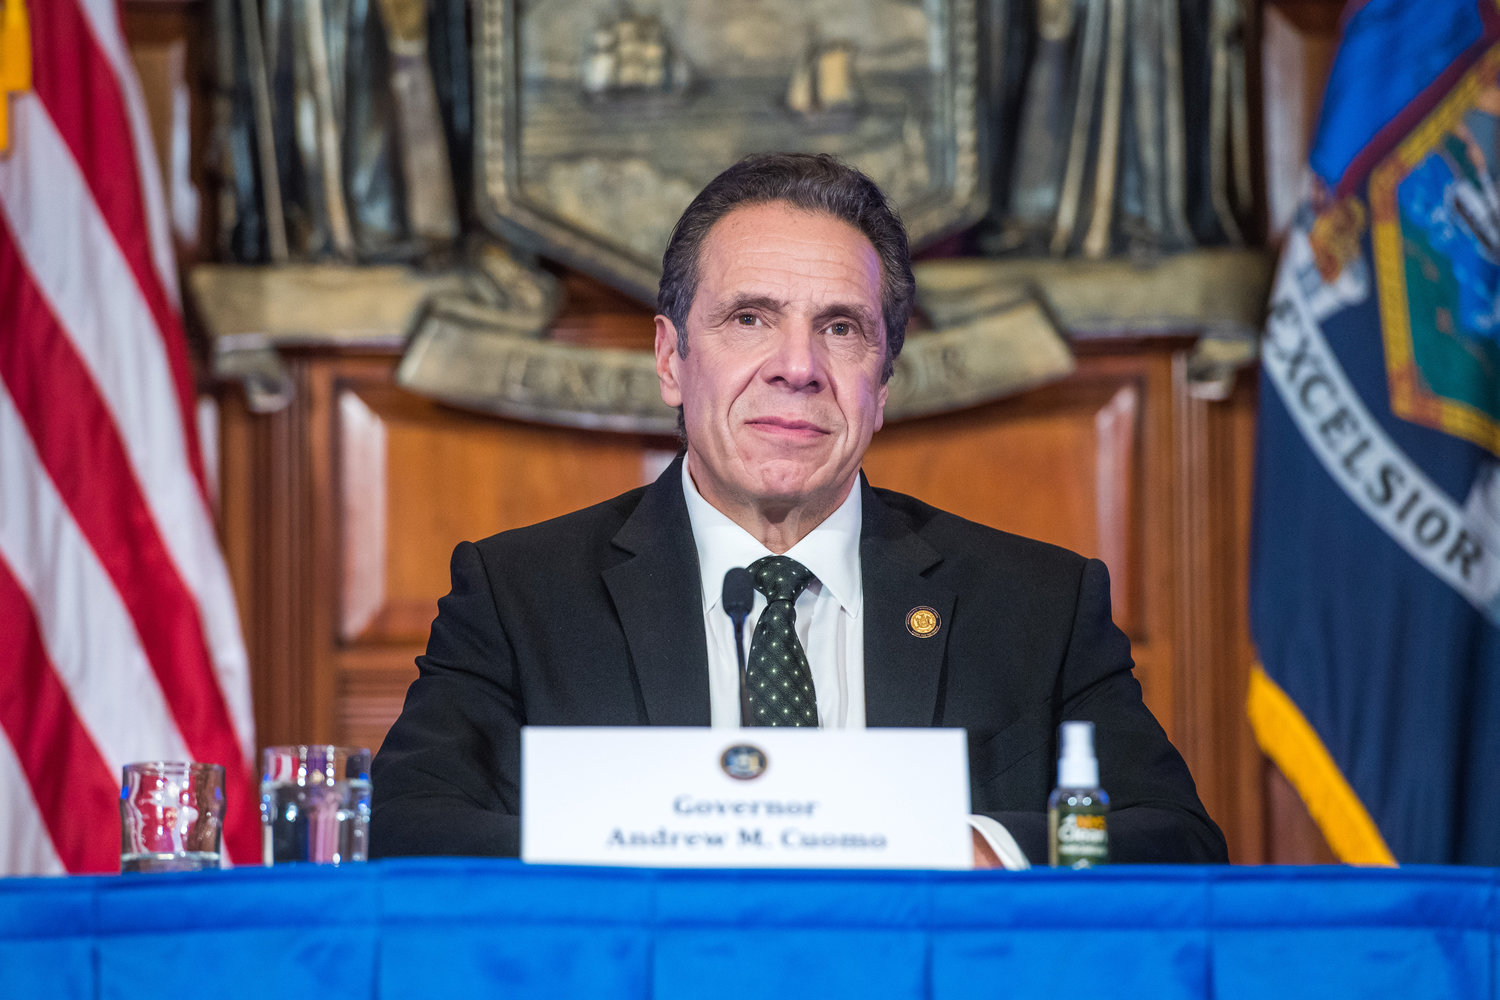 Gov. Andrew Cuomo issued a directive last year that nursing homes must take back coronavirus-positive patients from hospitals because of the limited number of hospital beds available in the wake of the pandemic. For months, Cuomo has been under fire for issuing this order as many believe it fueled the disease's spread in nursing homes, resulting in more deaths.